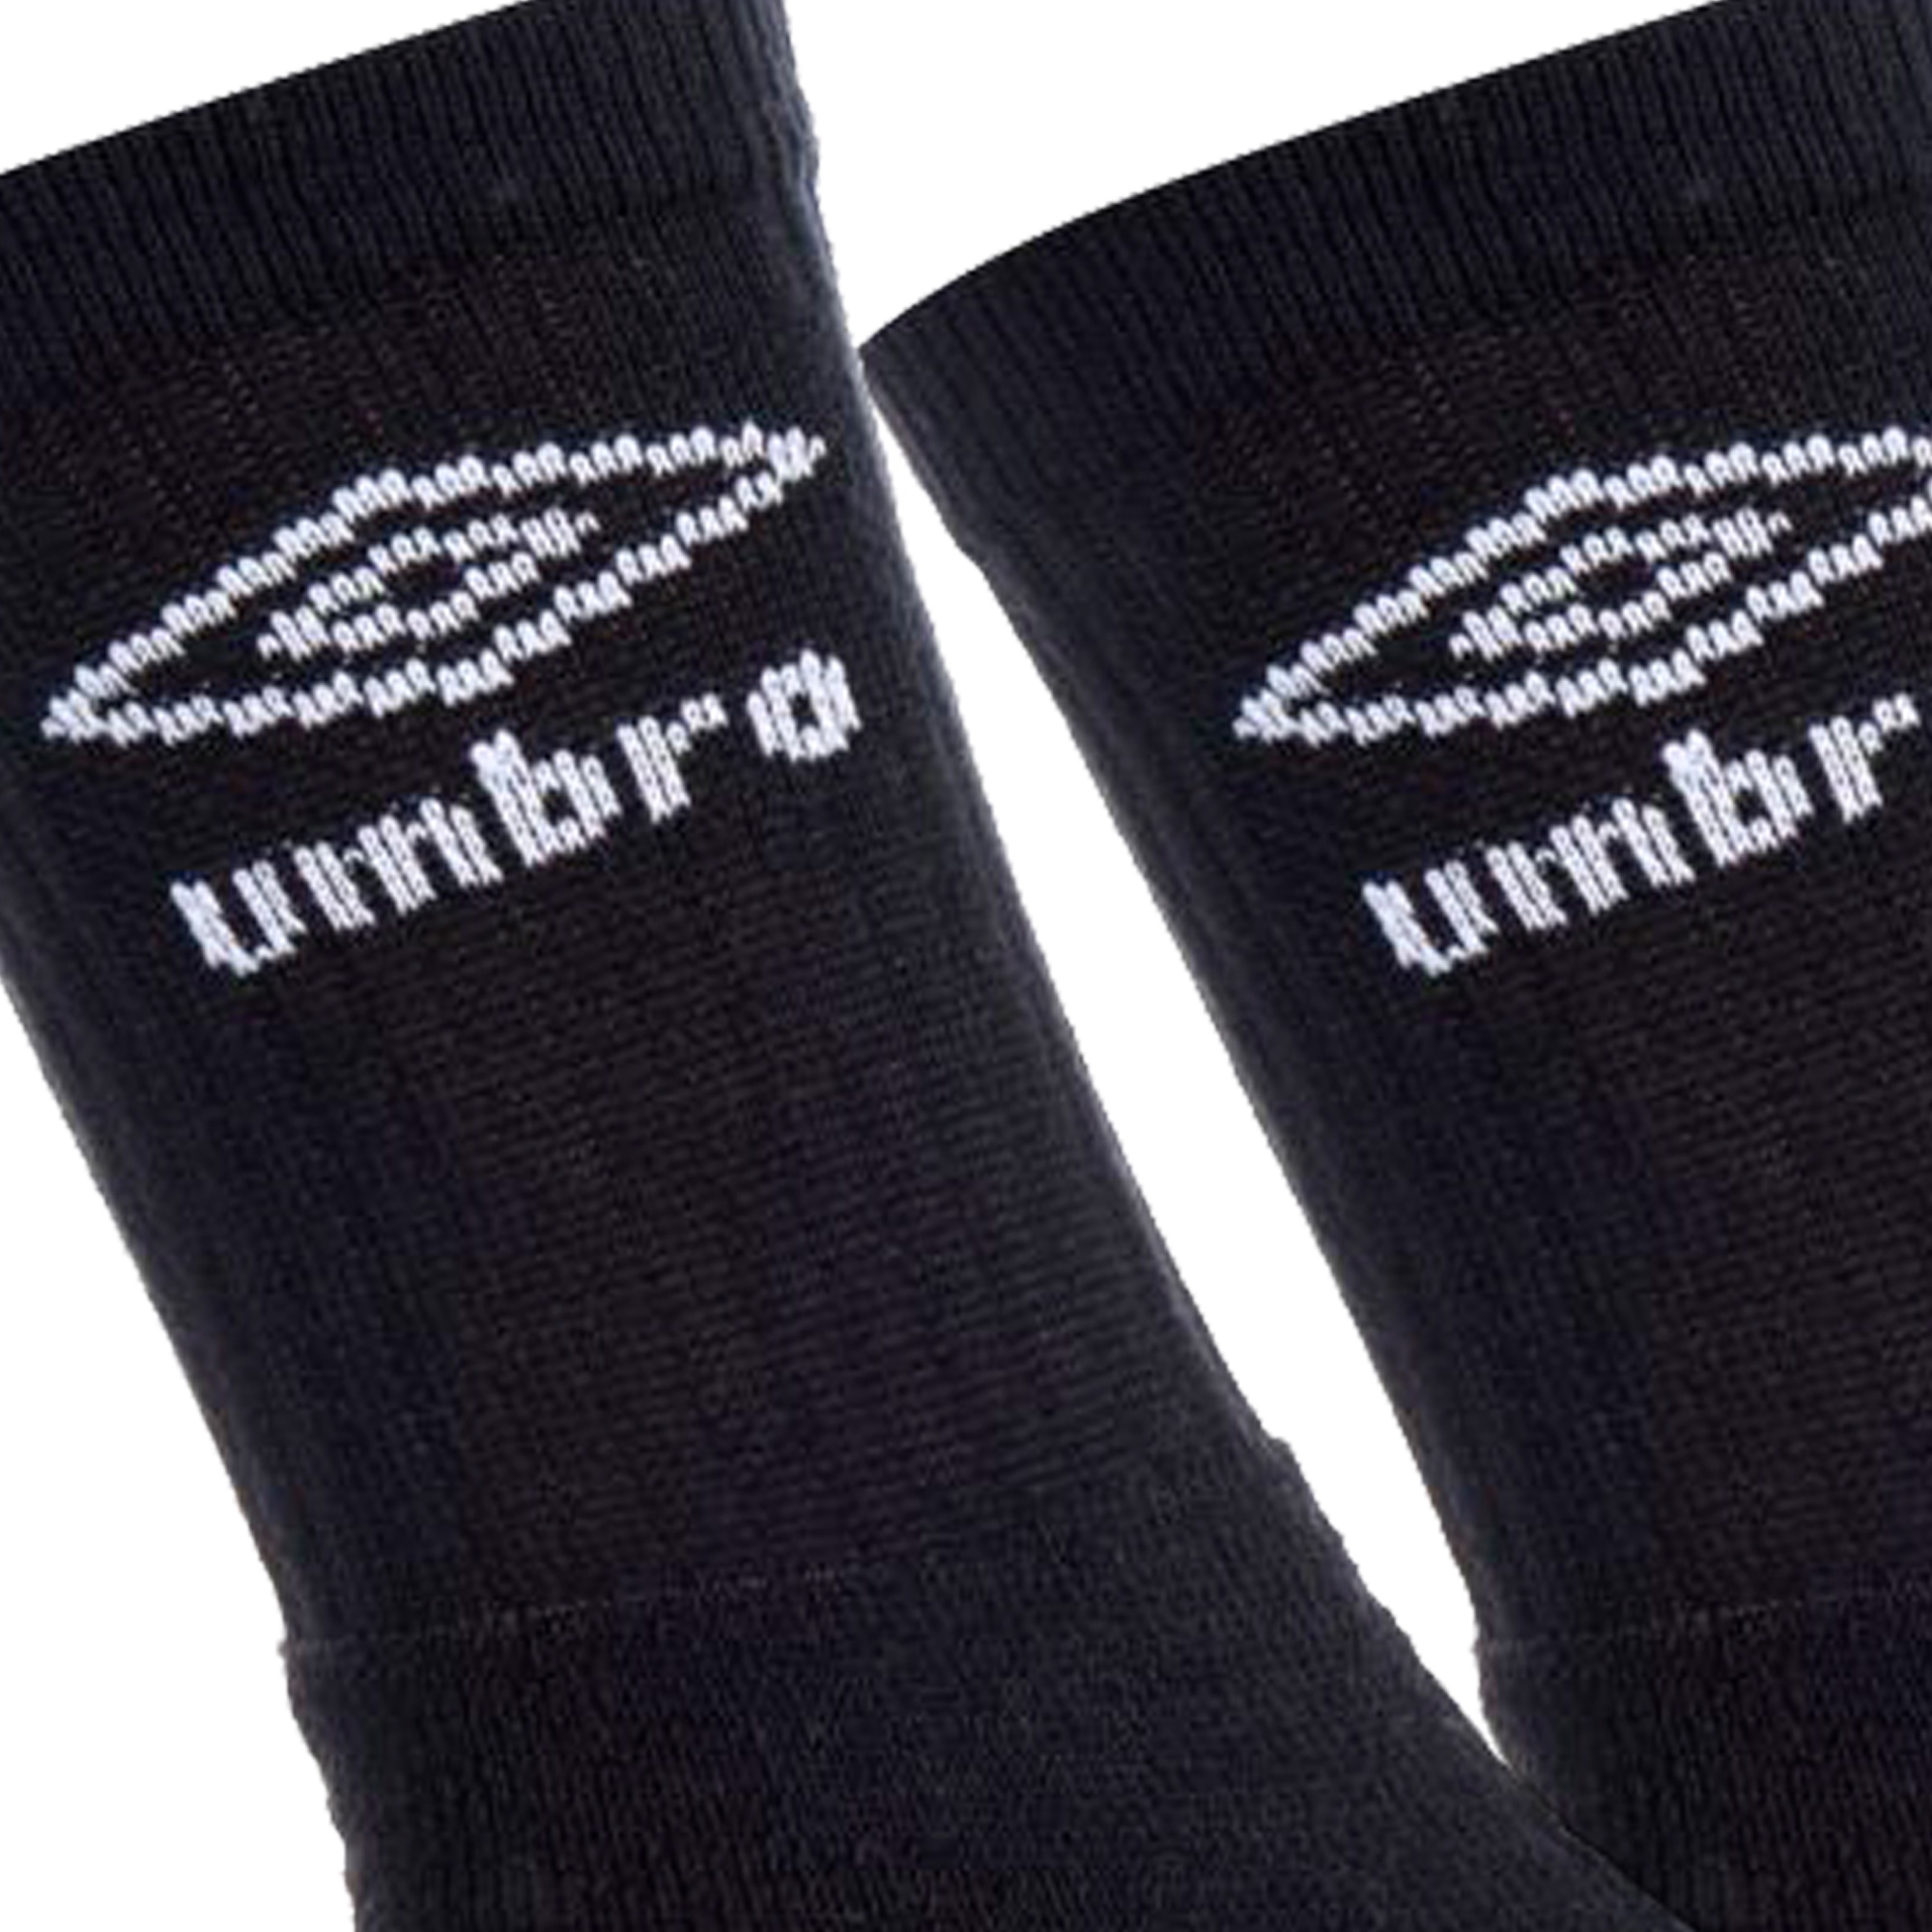 UMBRO Pack 10 pairs of long socks made of cotton, polyester and elastane in black color-3